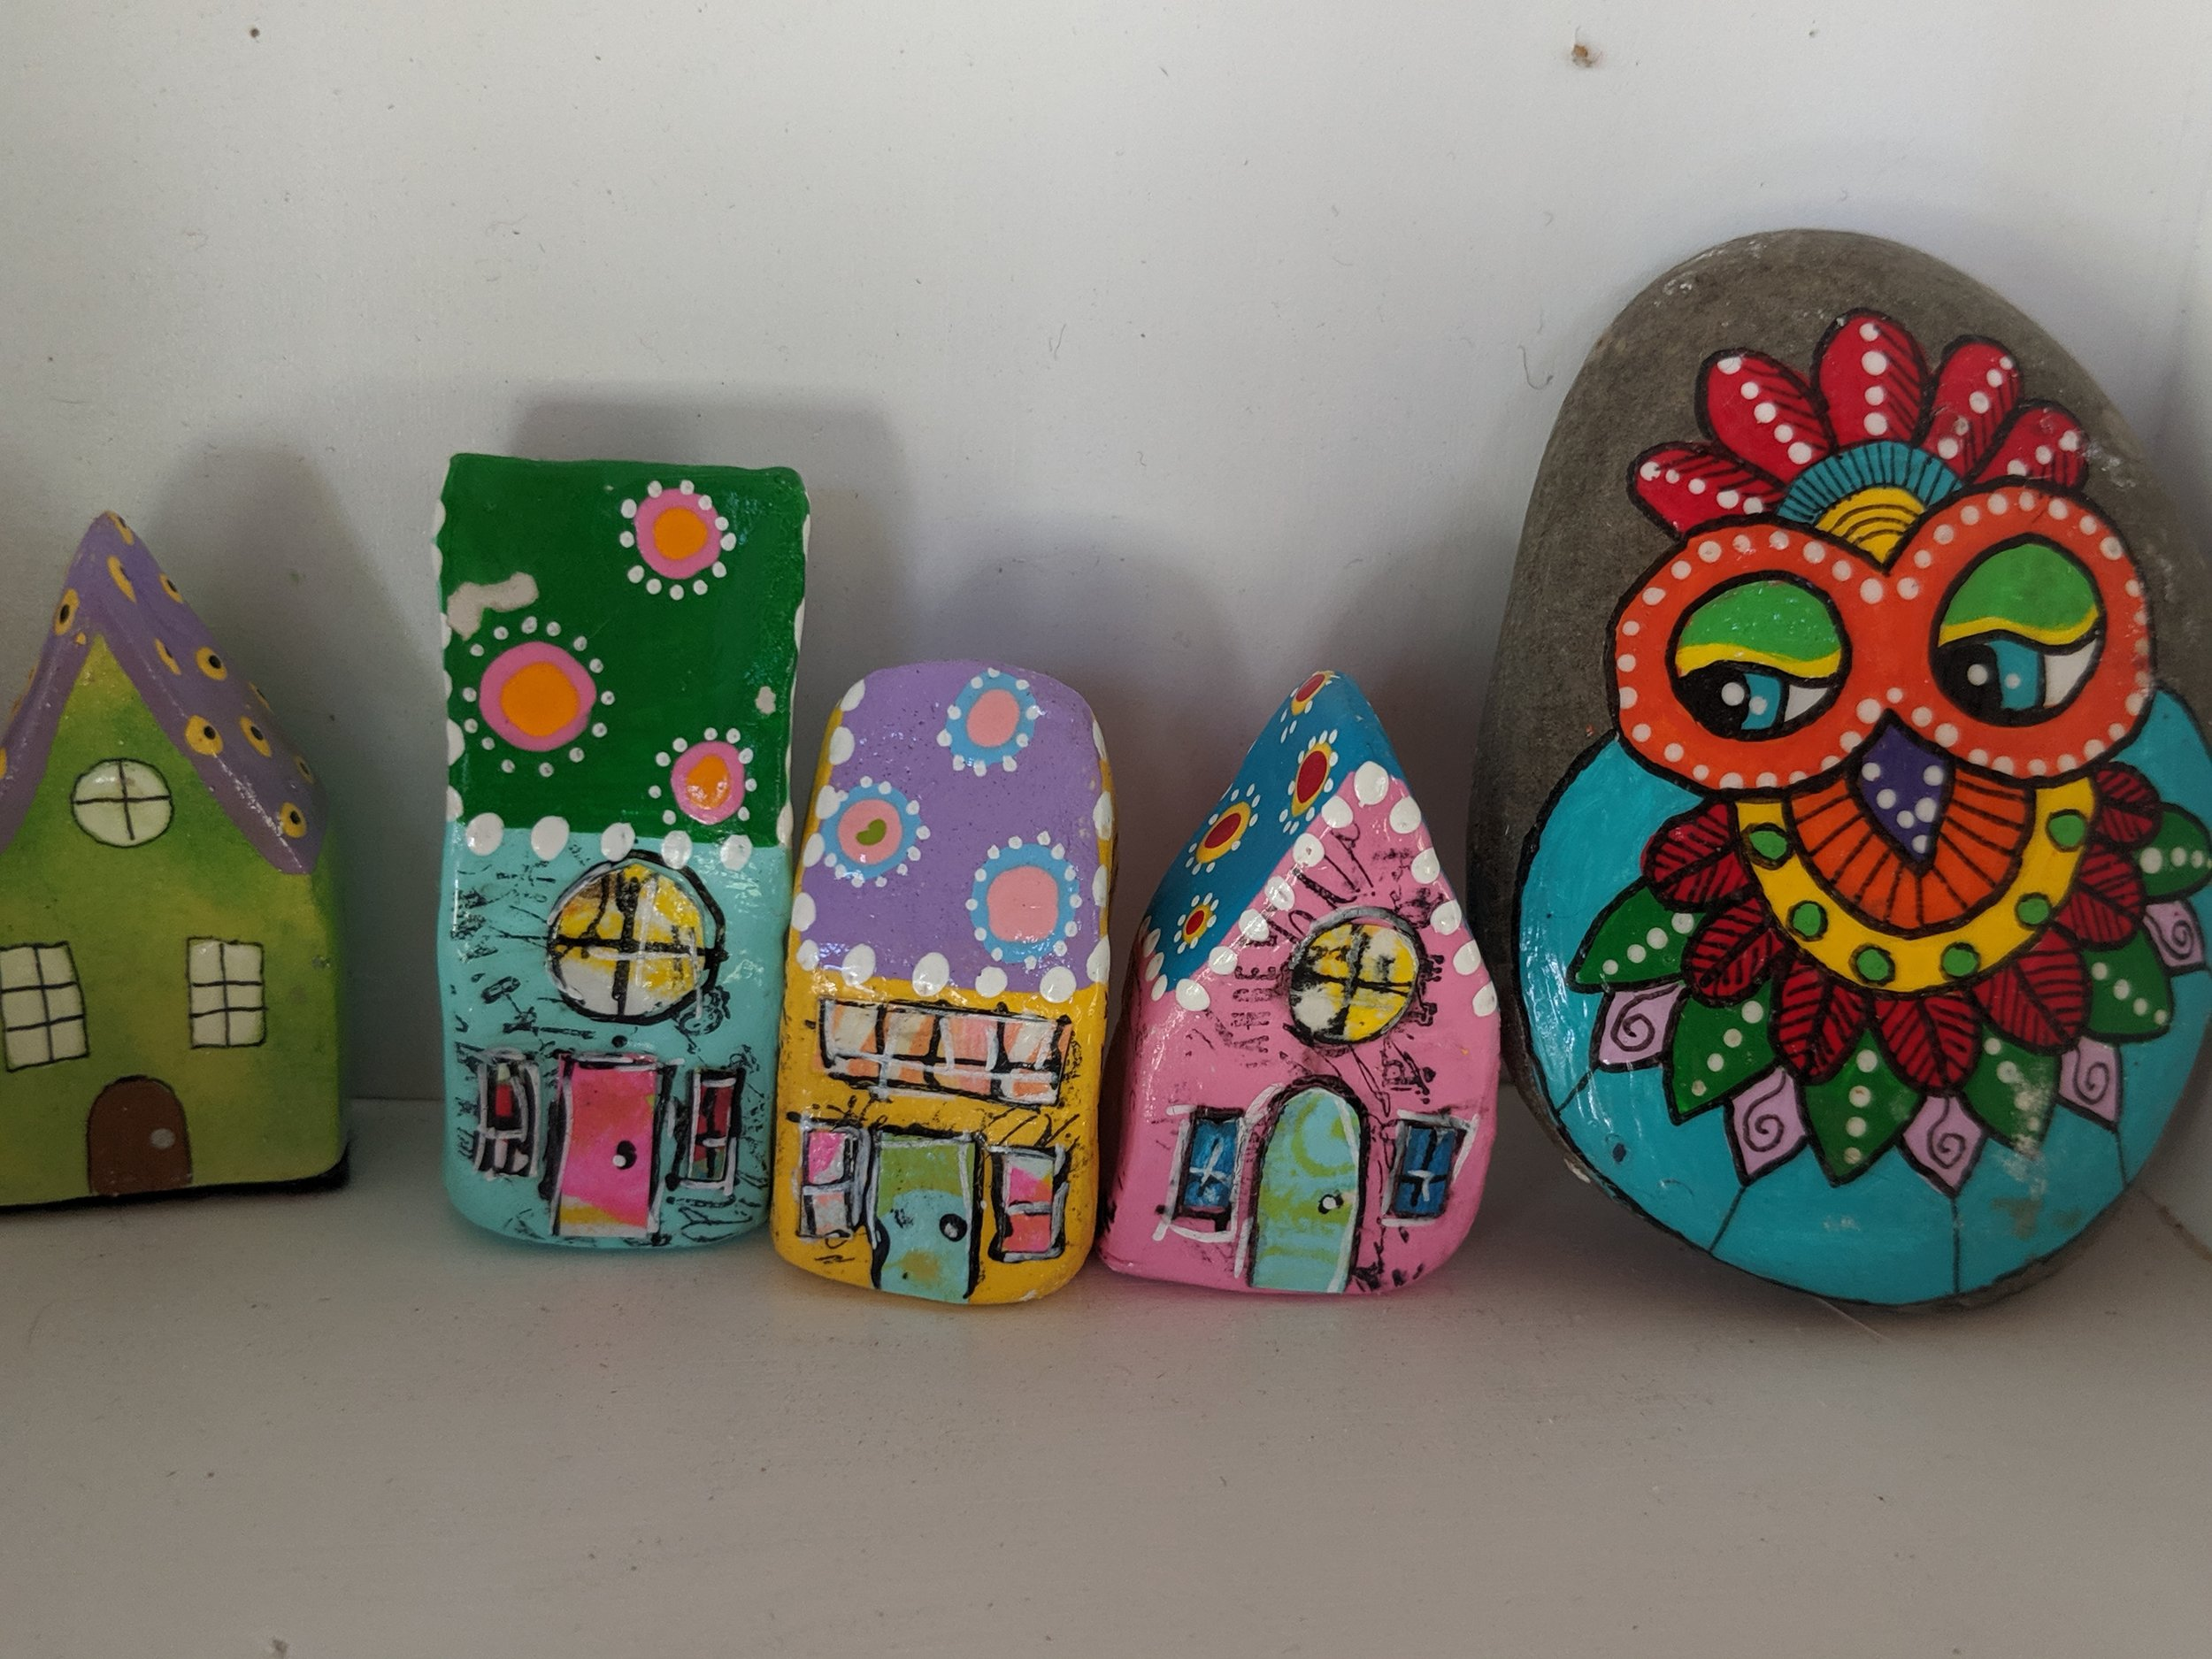 Painted rocks and whimsical clay houses are displayed in the case inside my shop with eye catching color and fun little details. These were a big hit with the kids that visited the shop during the Bolton Harvard Open Studios.